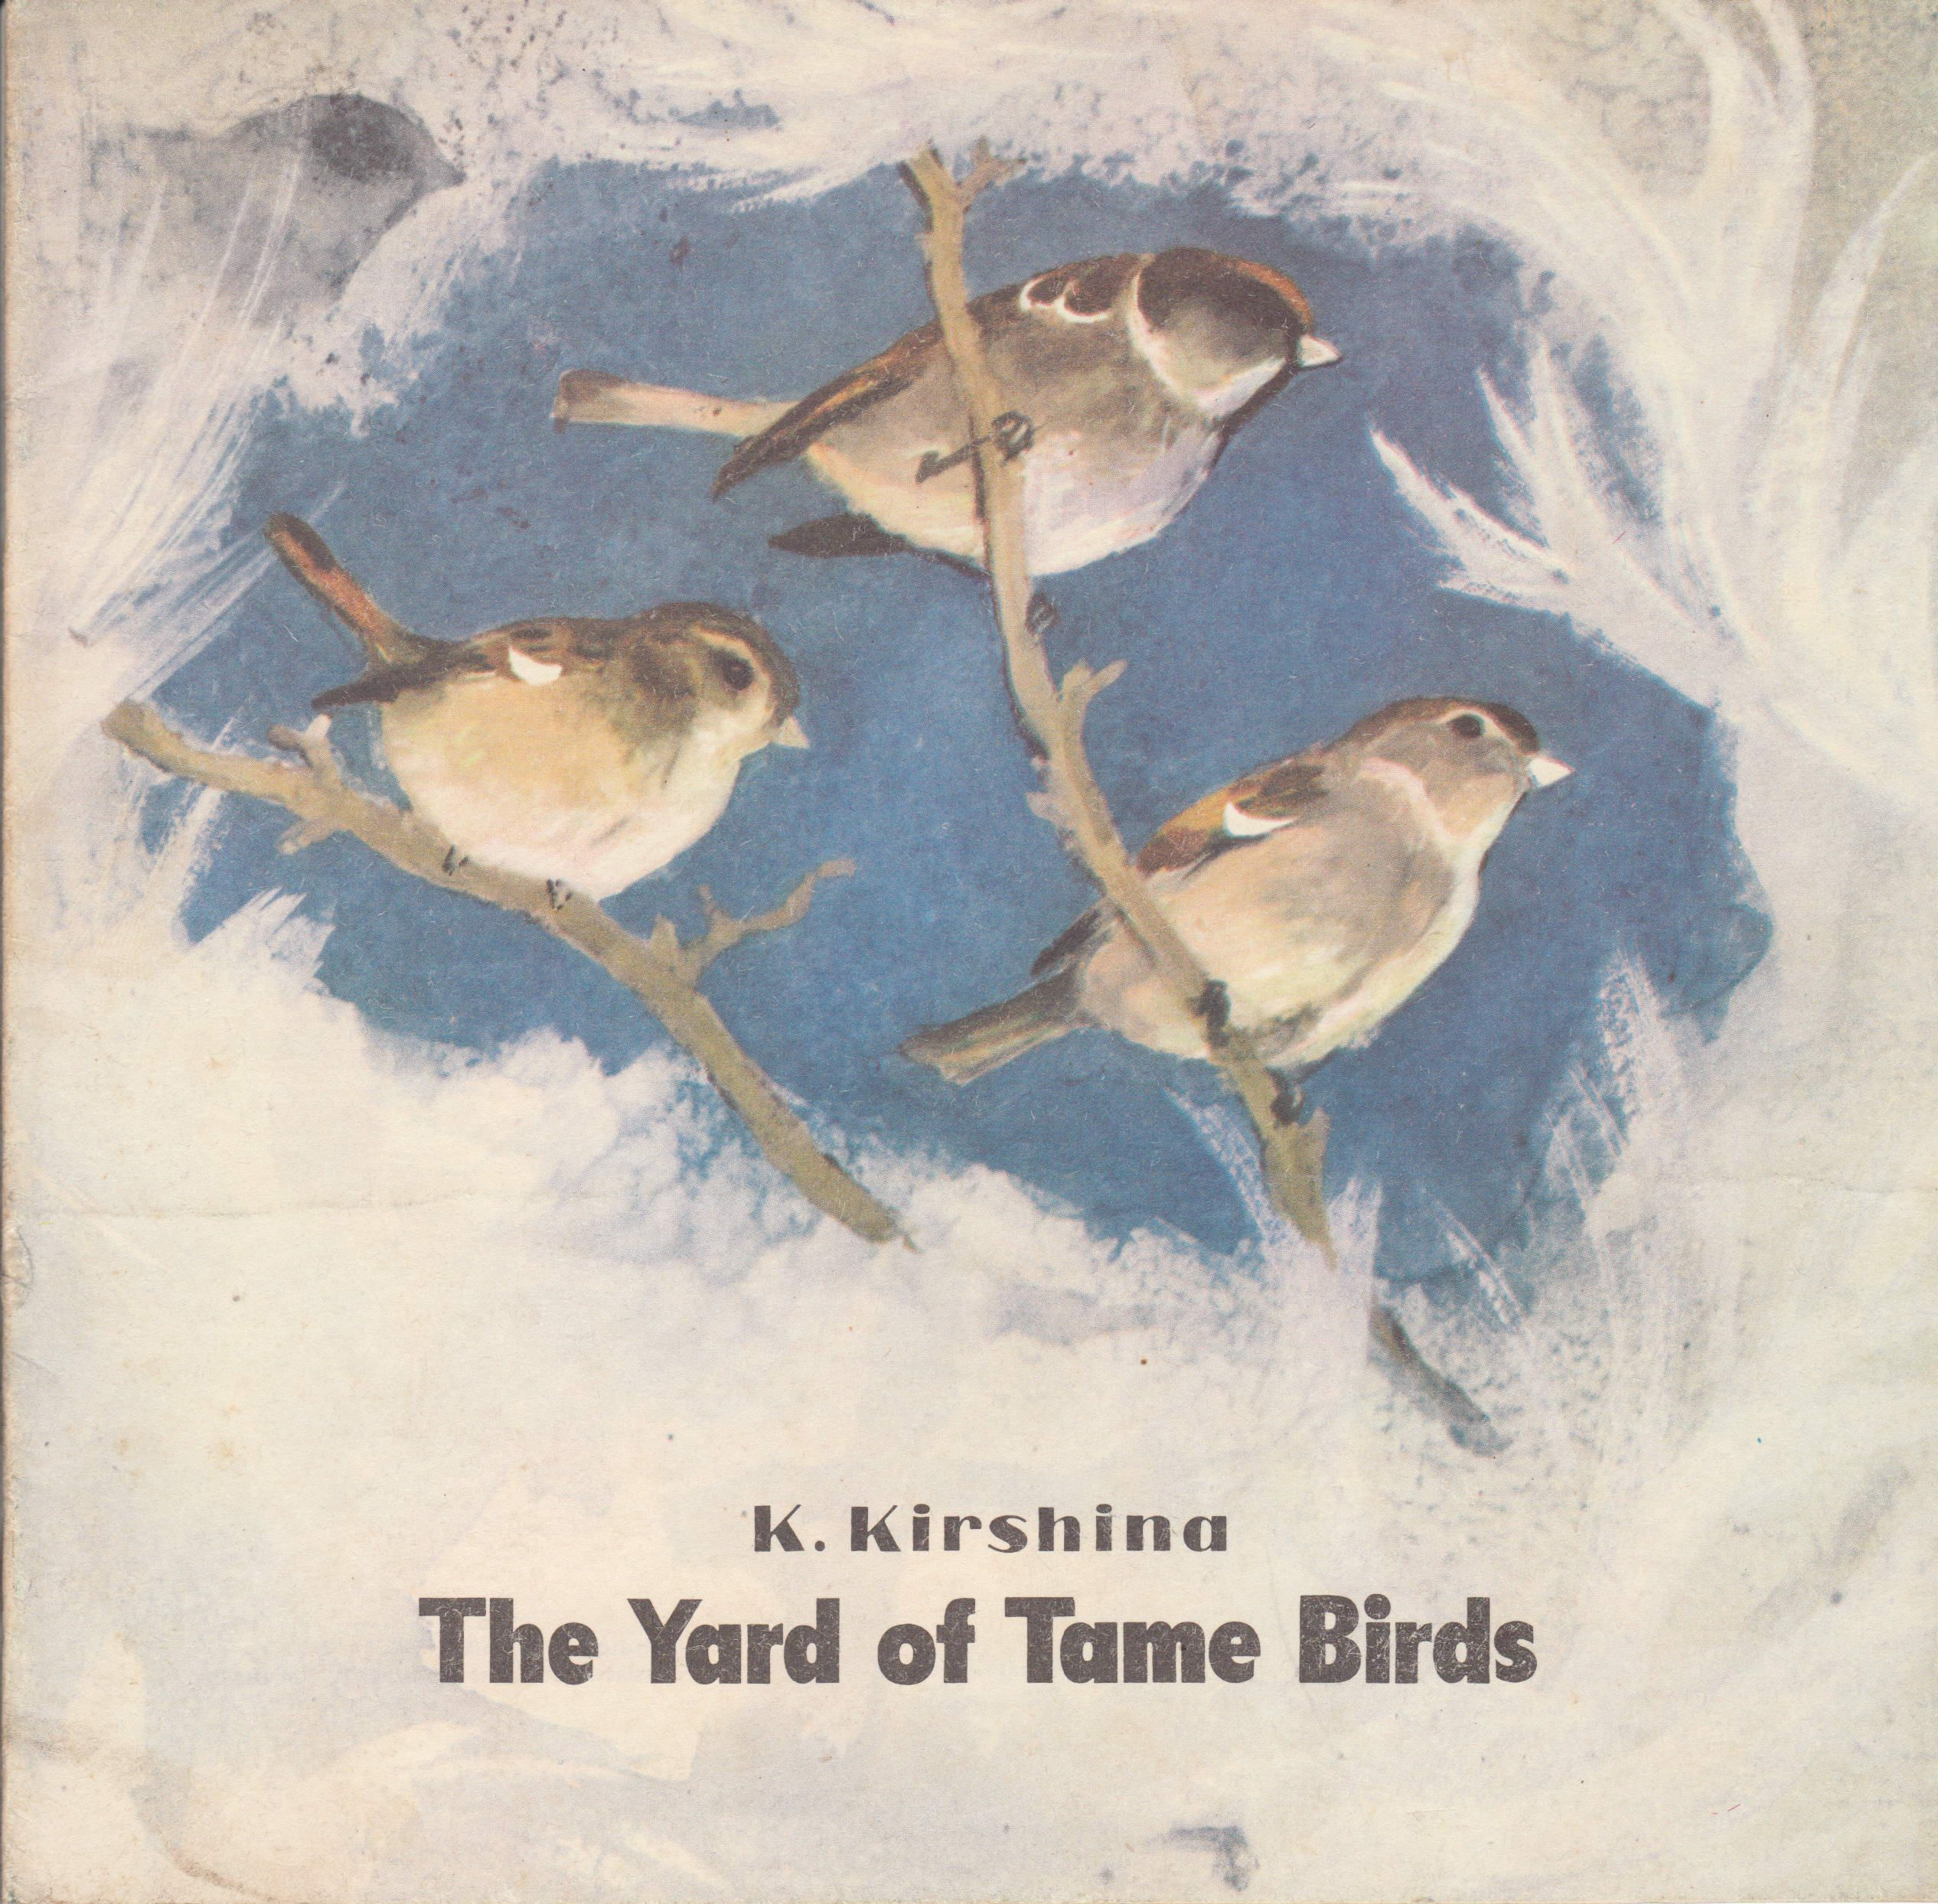 The Yard of Tame Birds. Translated from the Russian by Jan Butler. Lovely soft watercolour illustrations by G. Nikolsky. Click through on book for full details.